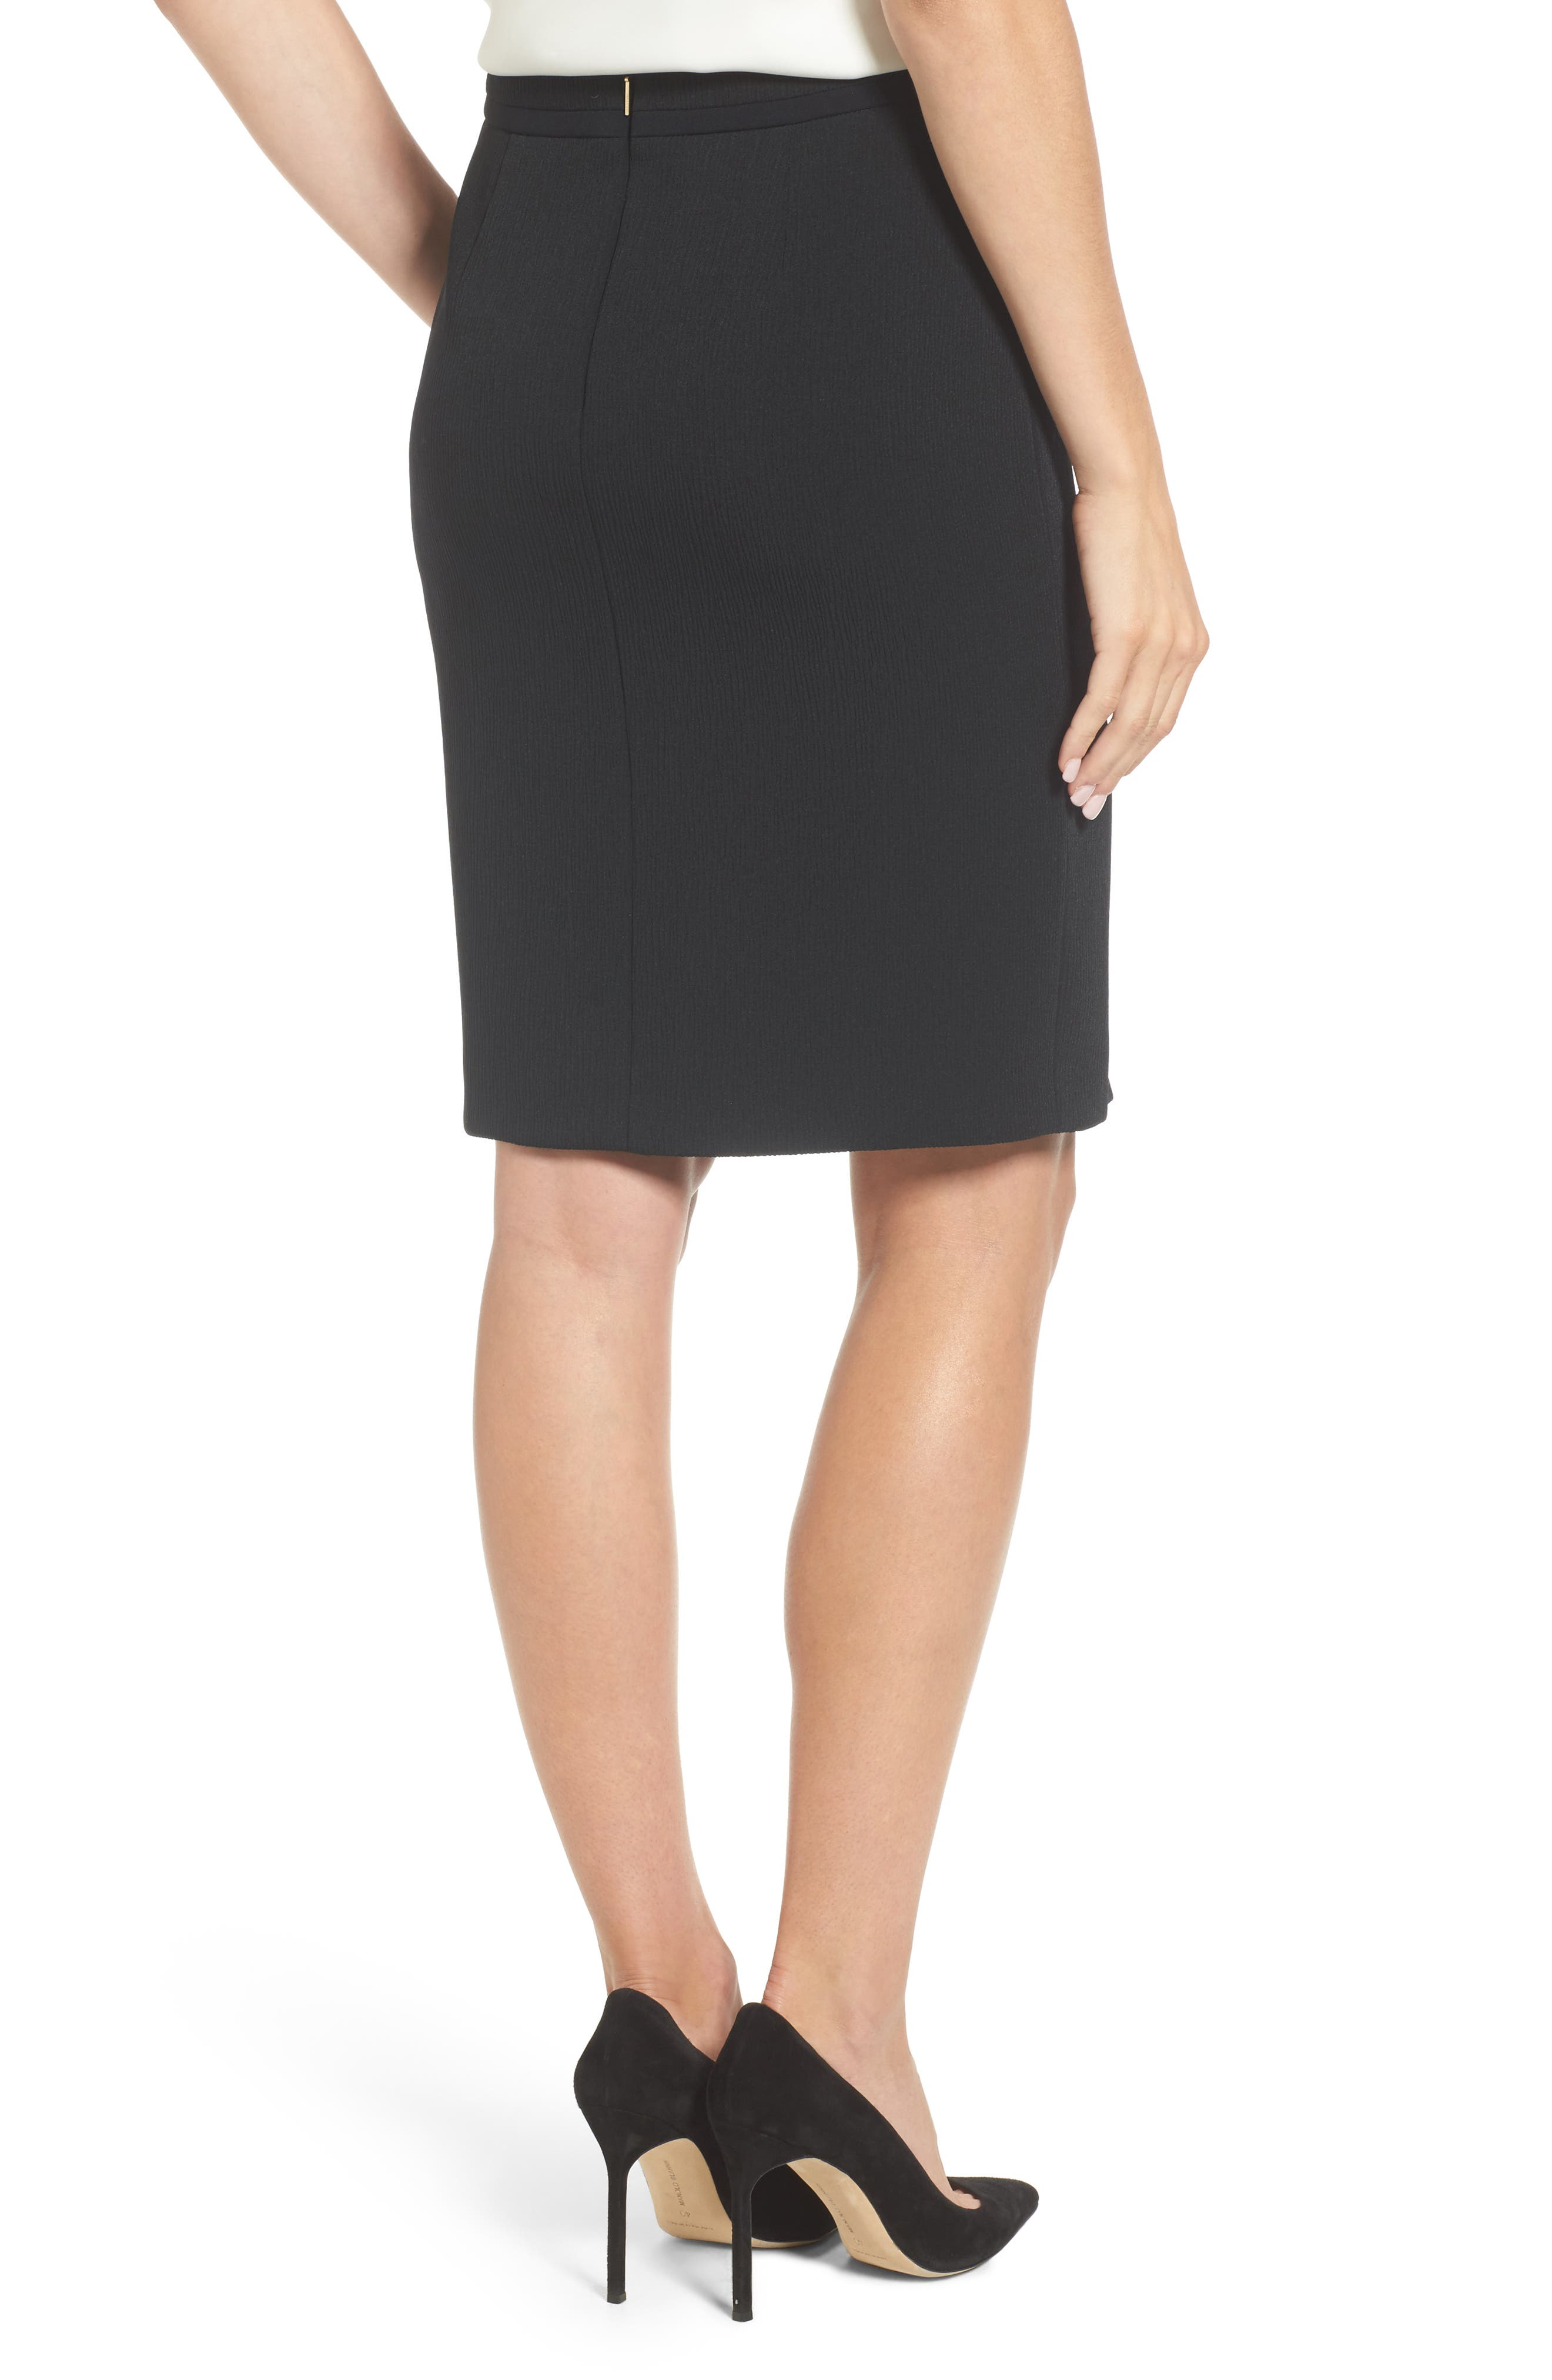 Vanafea Zip Front Crepe Pencil Skirt,                             Alternate thumbnail 2, color,                             Black